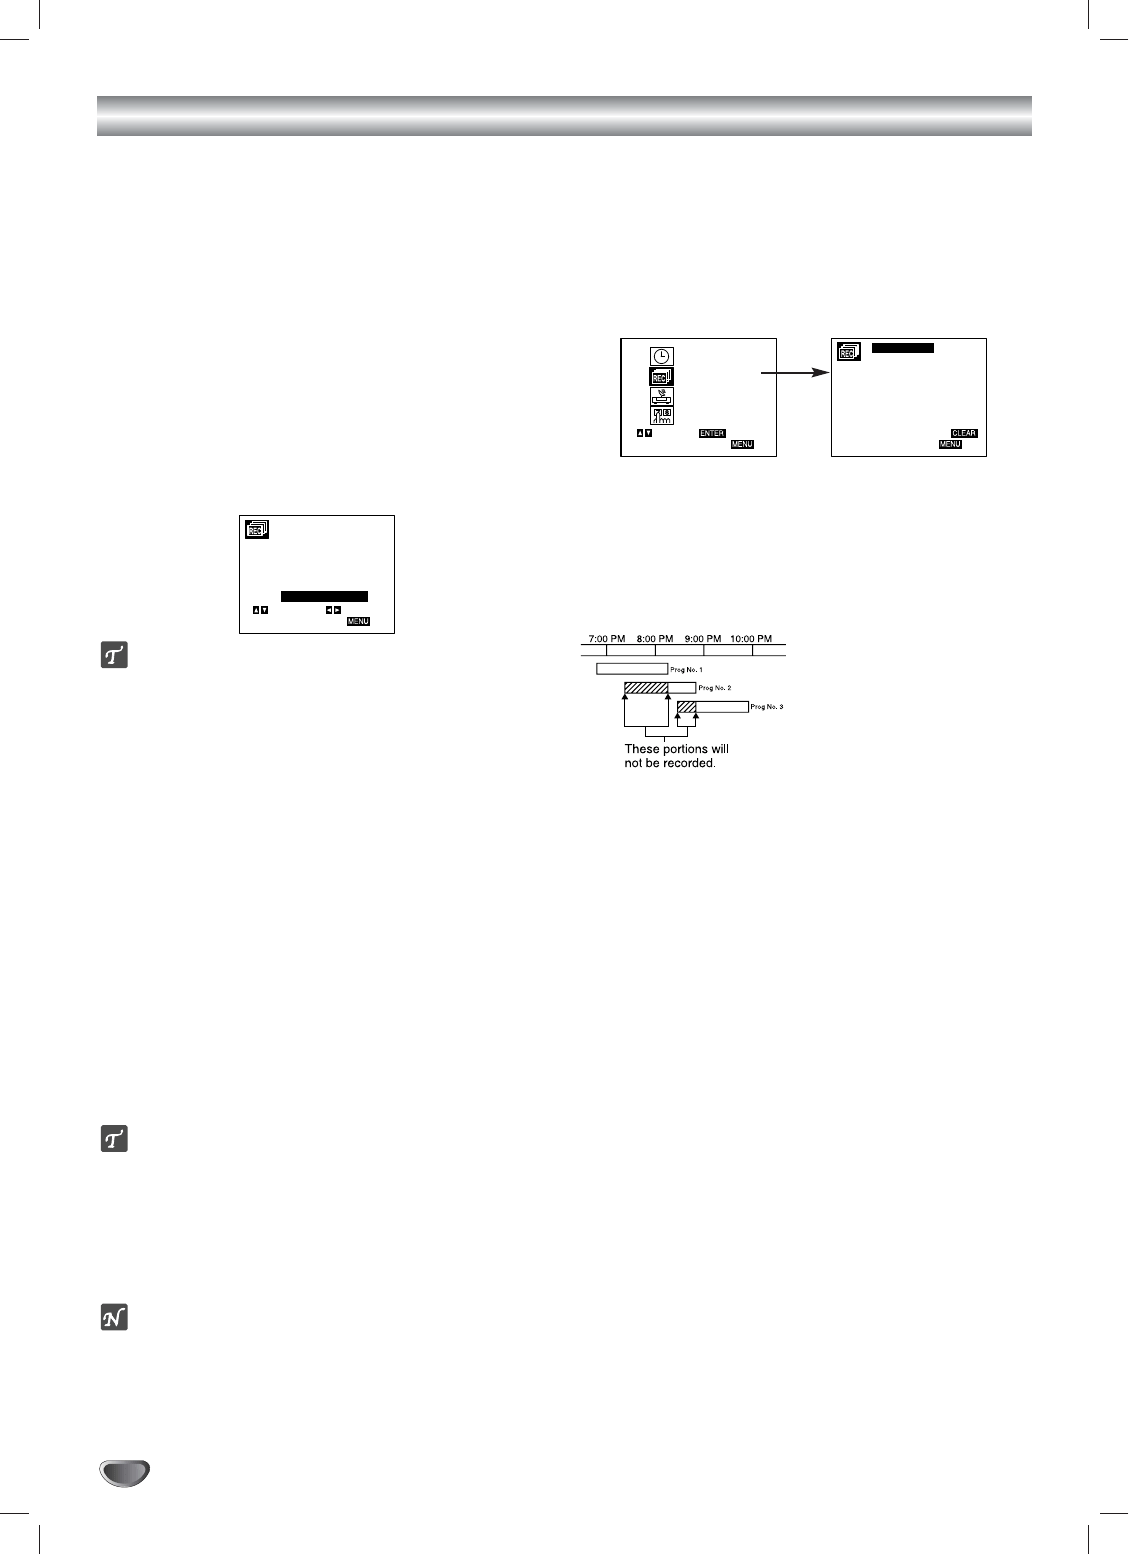 Page 24 of GoVideo DVD VCR Combo DVR 4200 User Guide